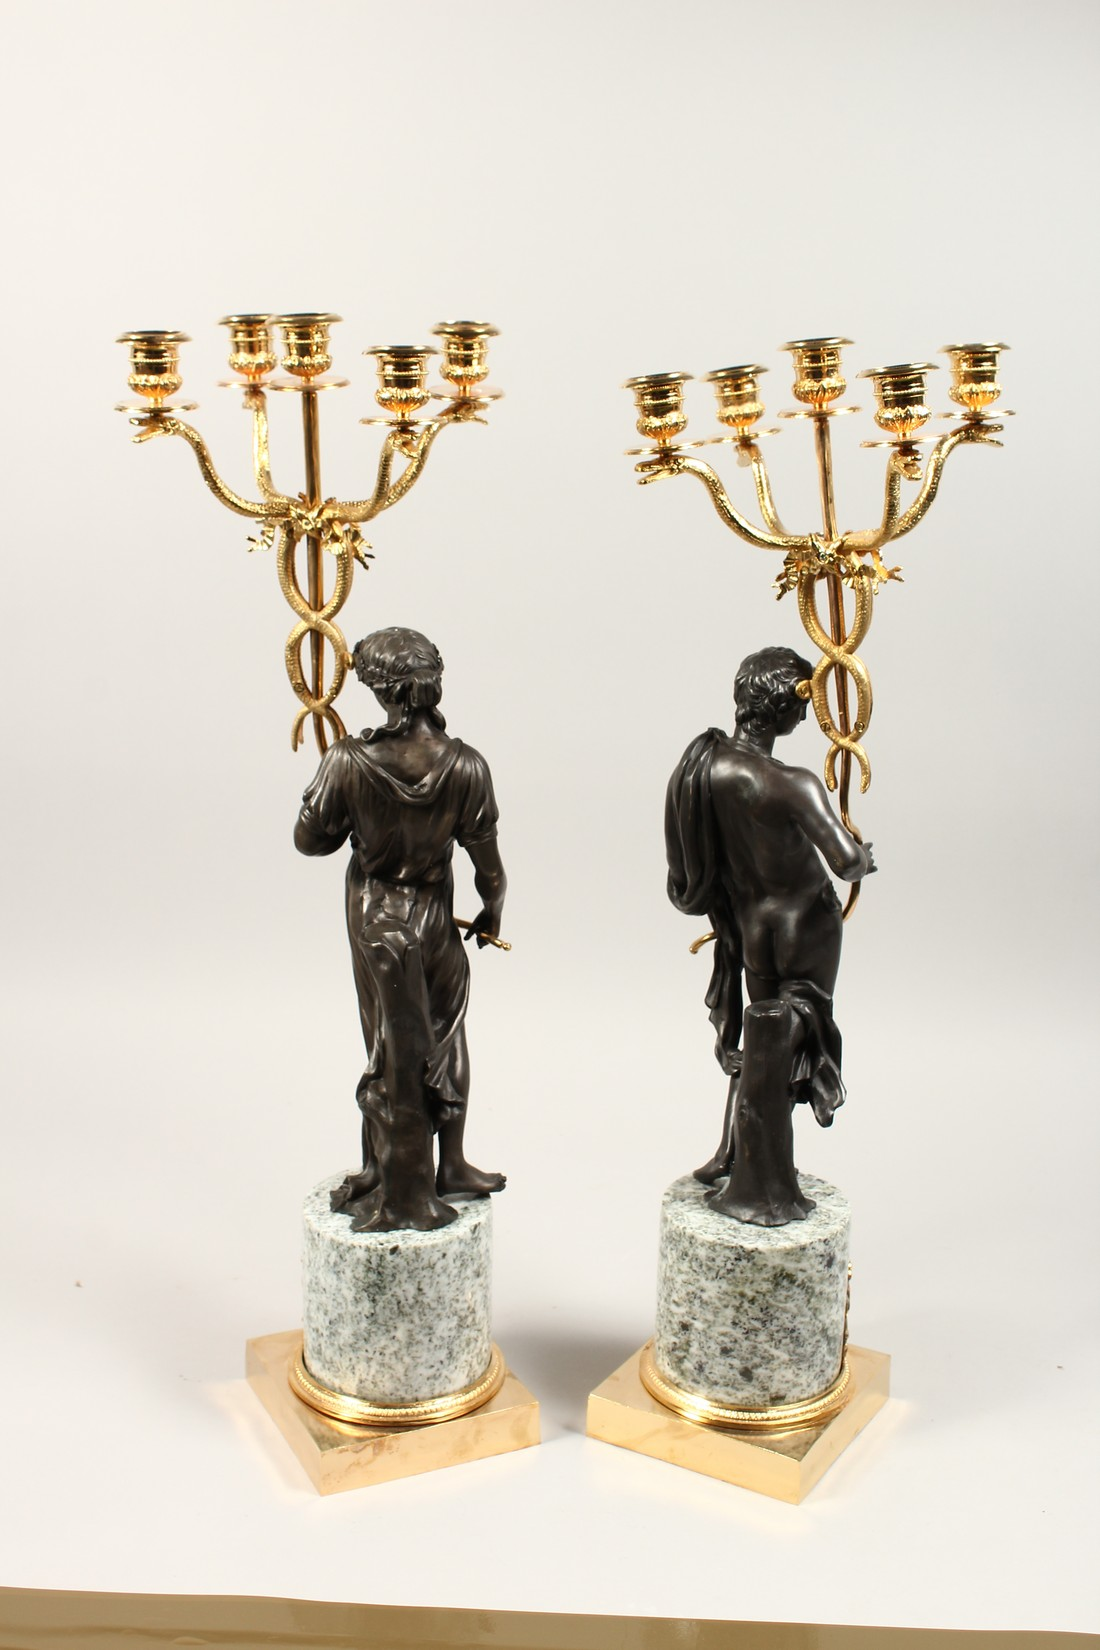 A LARGE PAIR OF THOMAS HOPE DESIGN, ORMOLU AND BRONZE CLASSICAL CANDLESTICKS with a pair of - Image 4 of 5